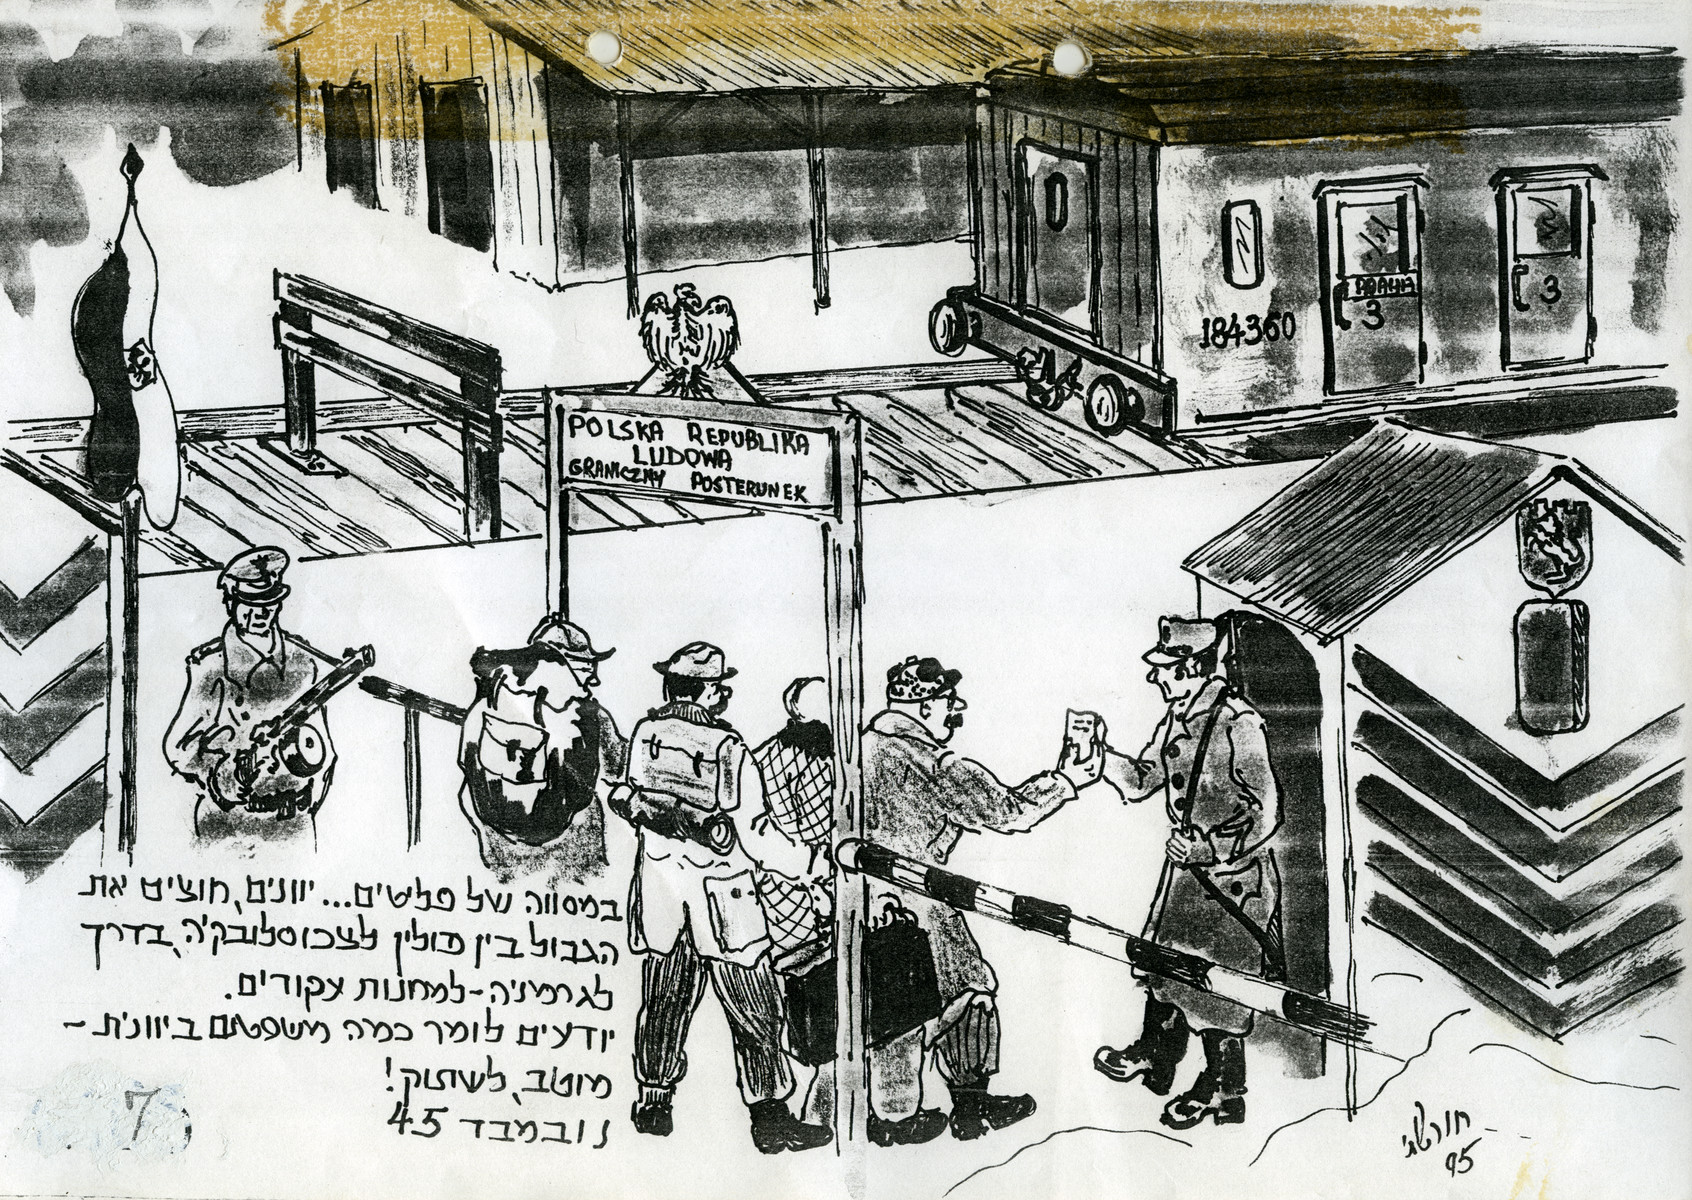 Page of a pictoral memoir drawn by the donor documenting his experiences after the Holocaust.  The drawing shows Jewish refugees crossing the border between Poland and Czechoslovakia while pretending to be Greeks.